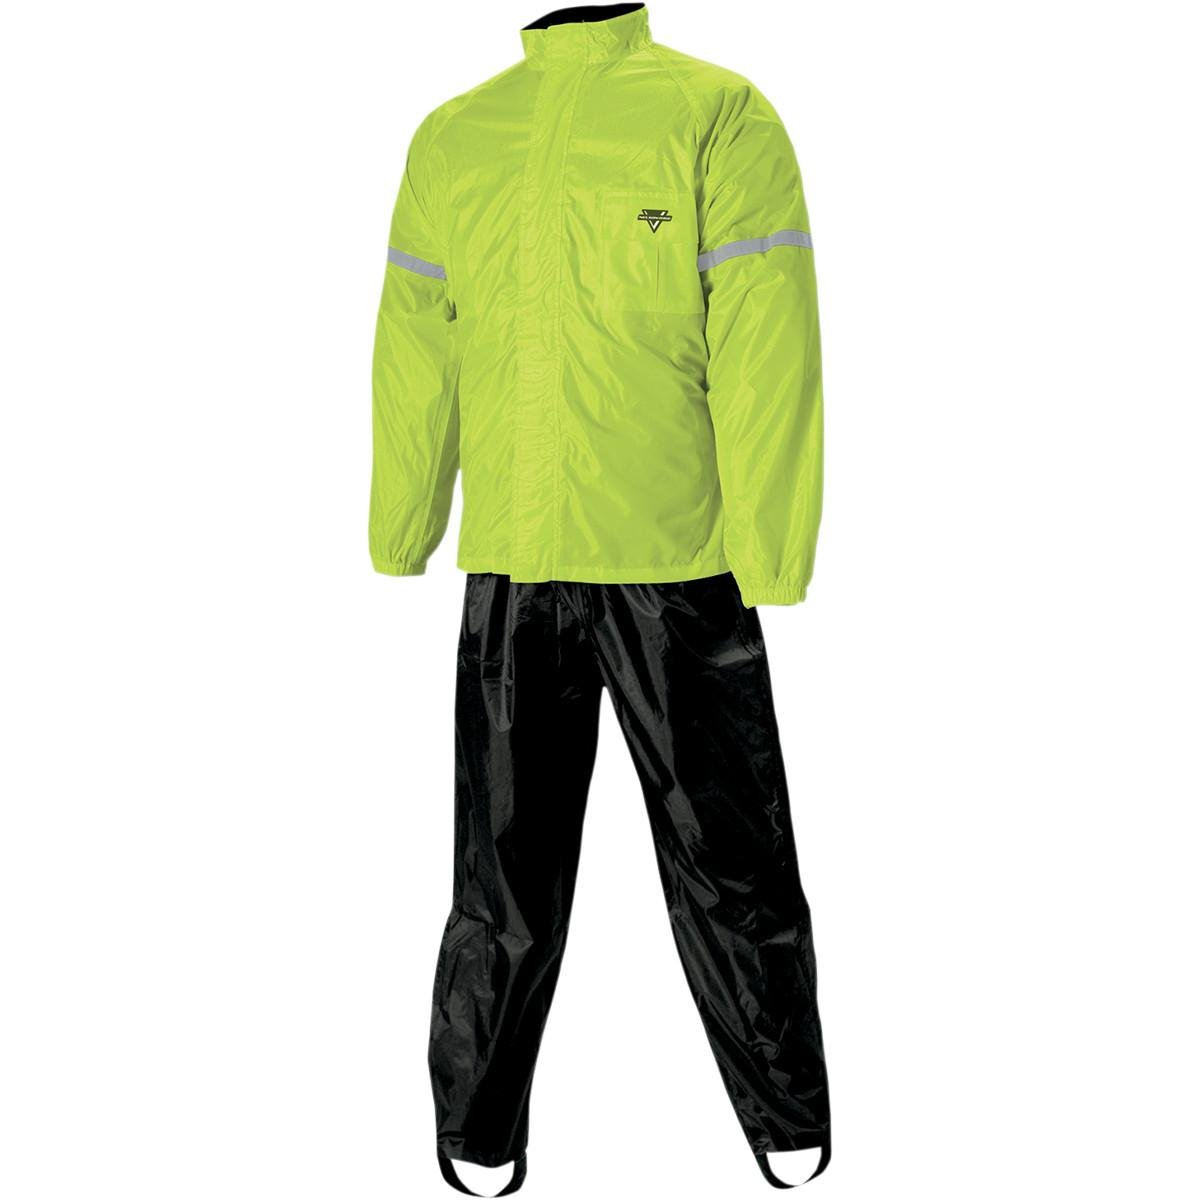 Nelson-Rigg WP-8000 Weatherpro Men's 2-Piece Sports Bike Motorcycle Rain Suits - Black/Hi-Visibility Yellow / 2X-Large